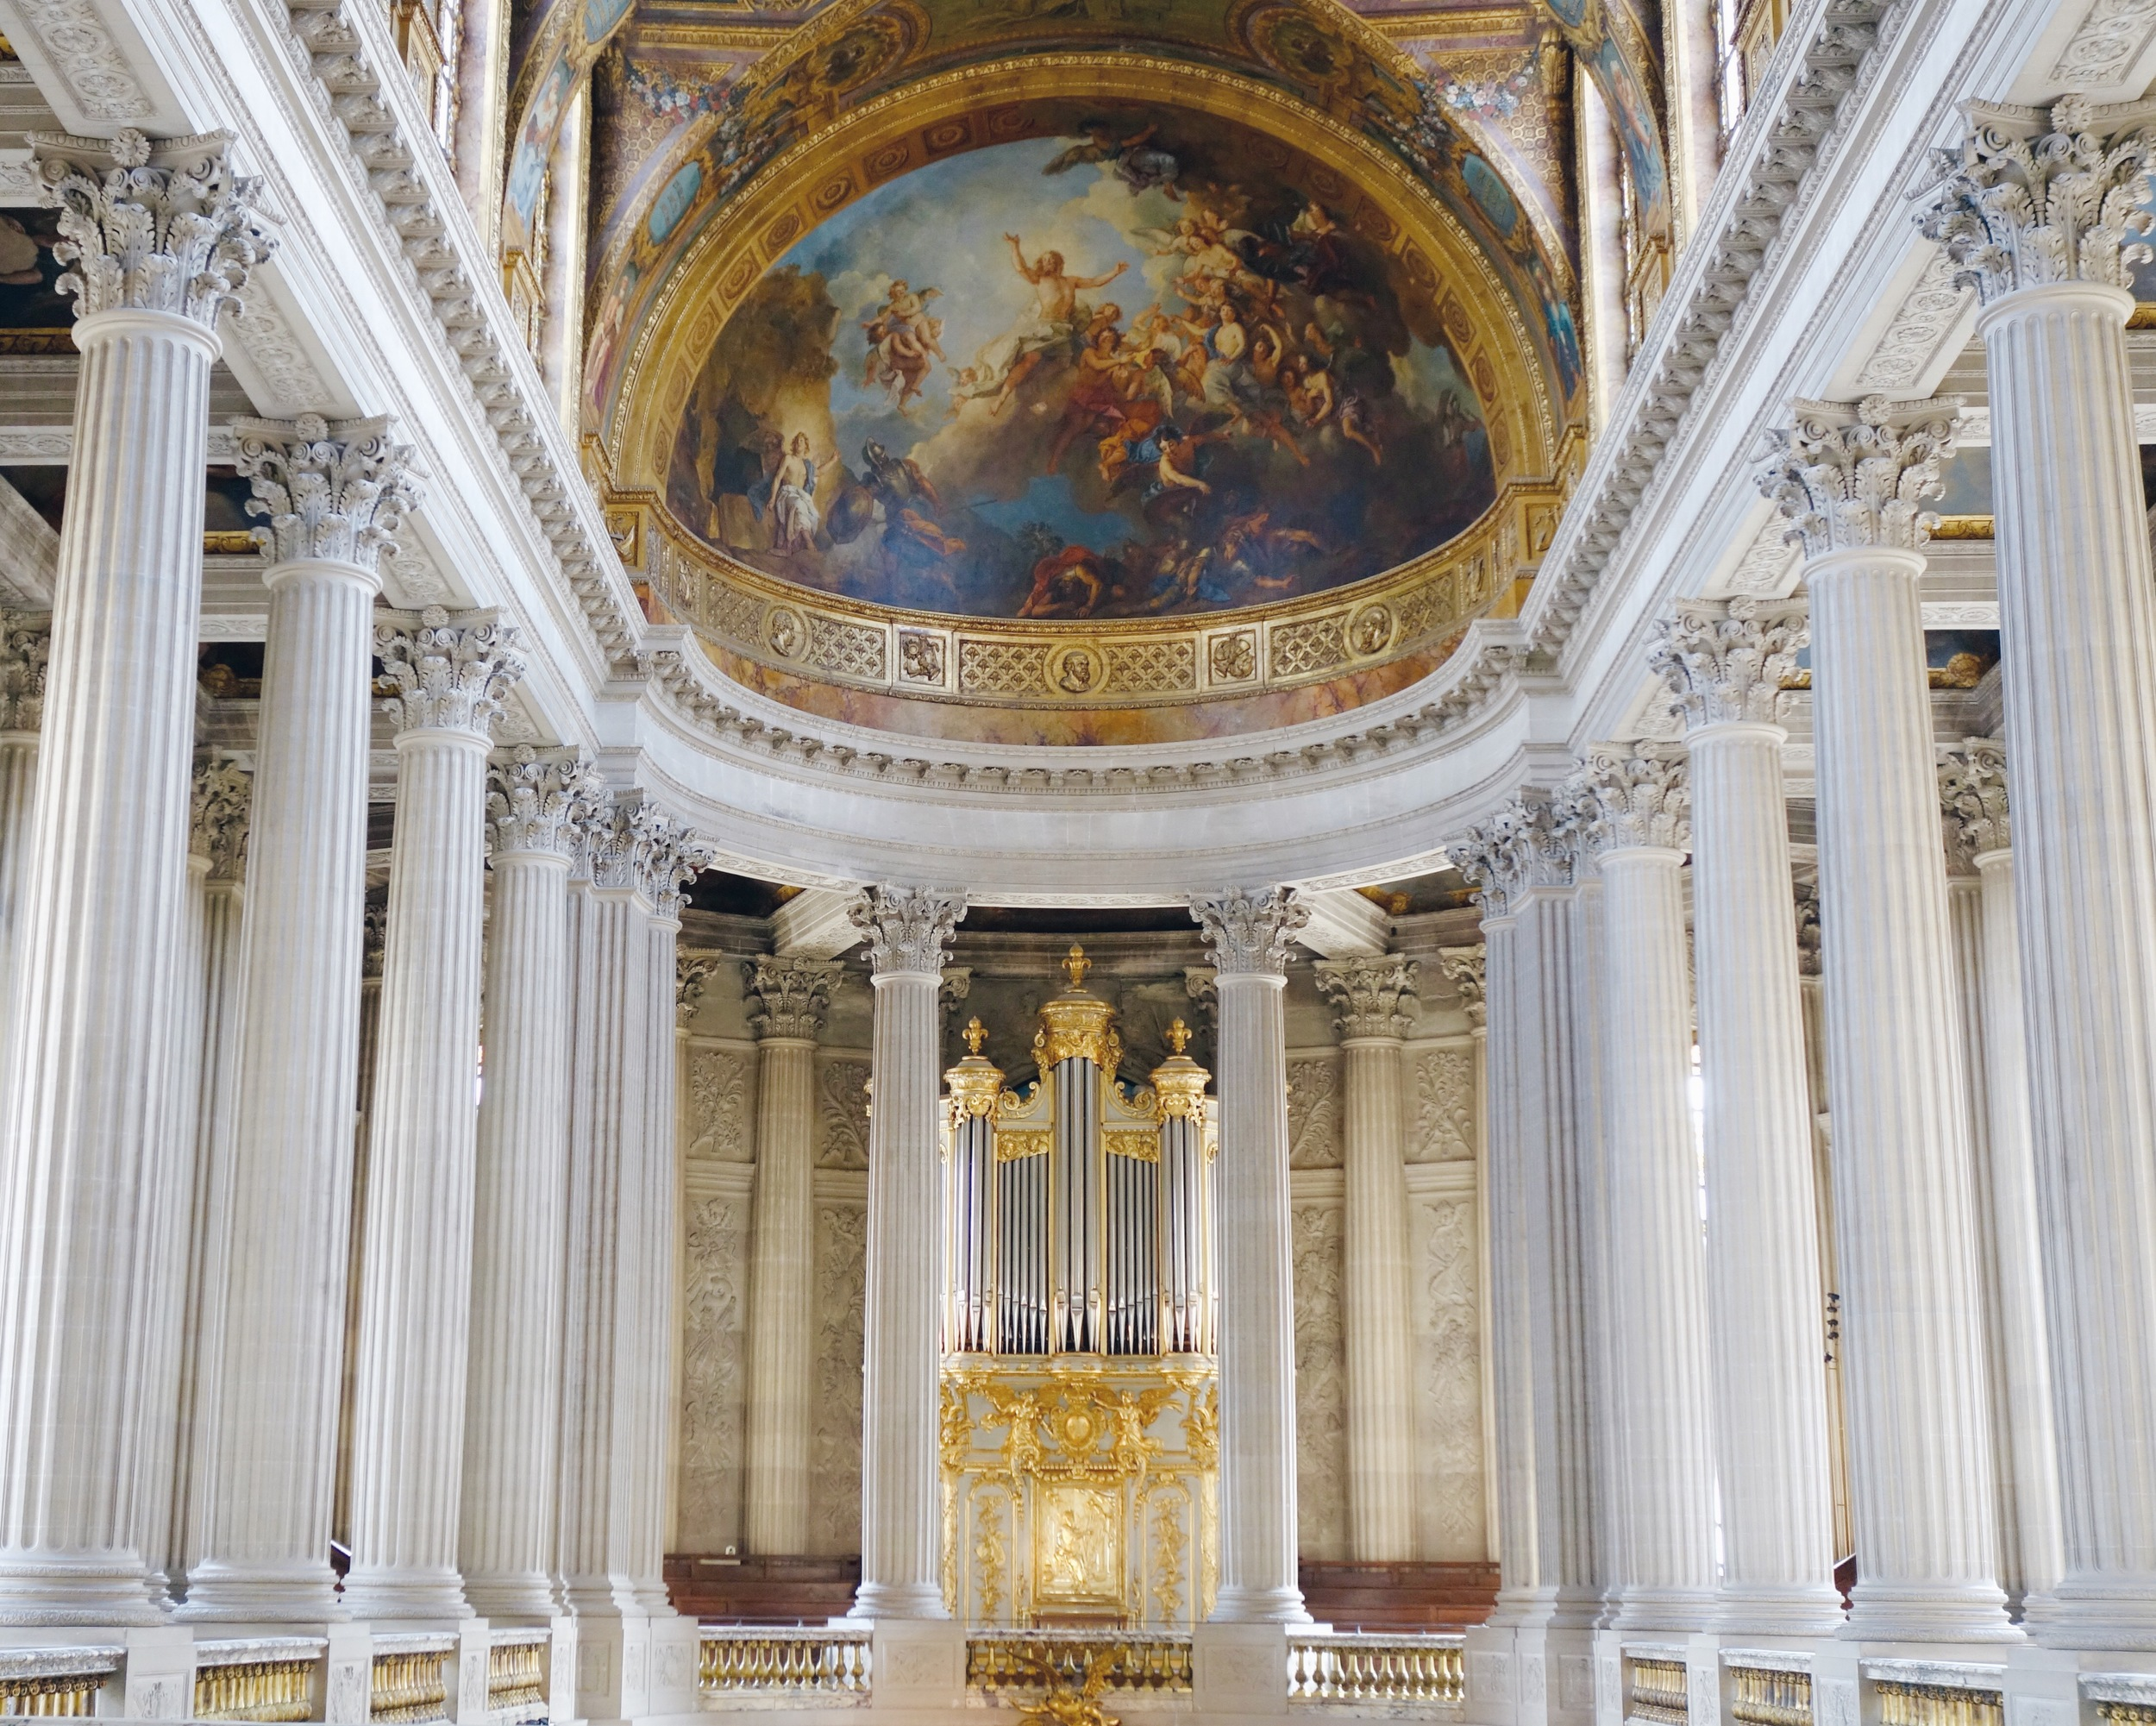 The main chapel at Versailles